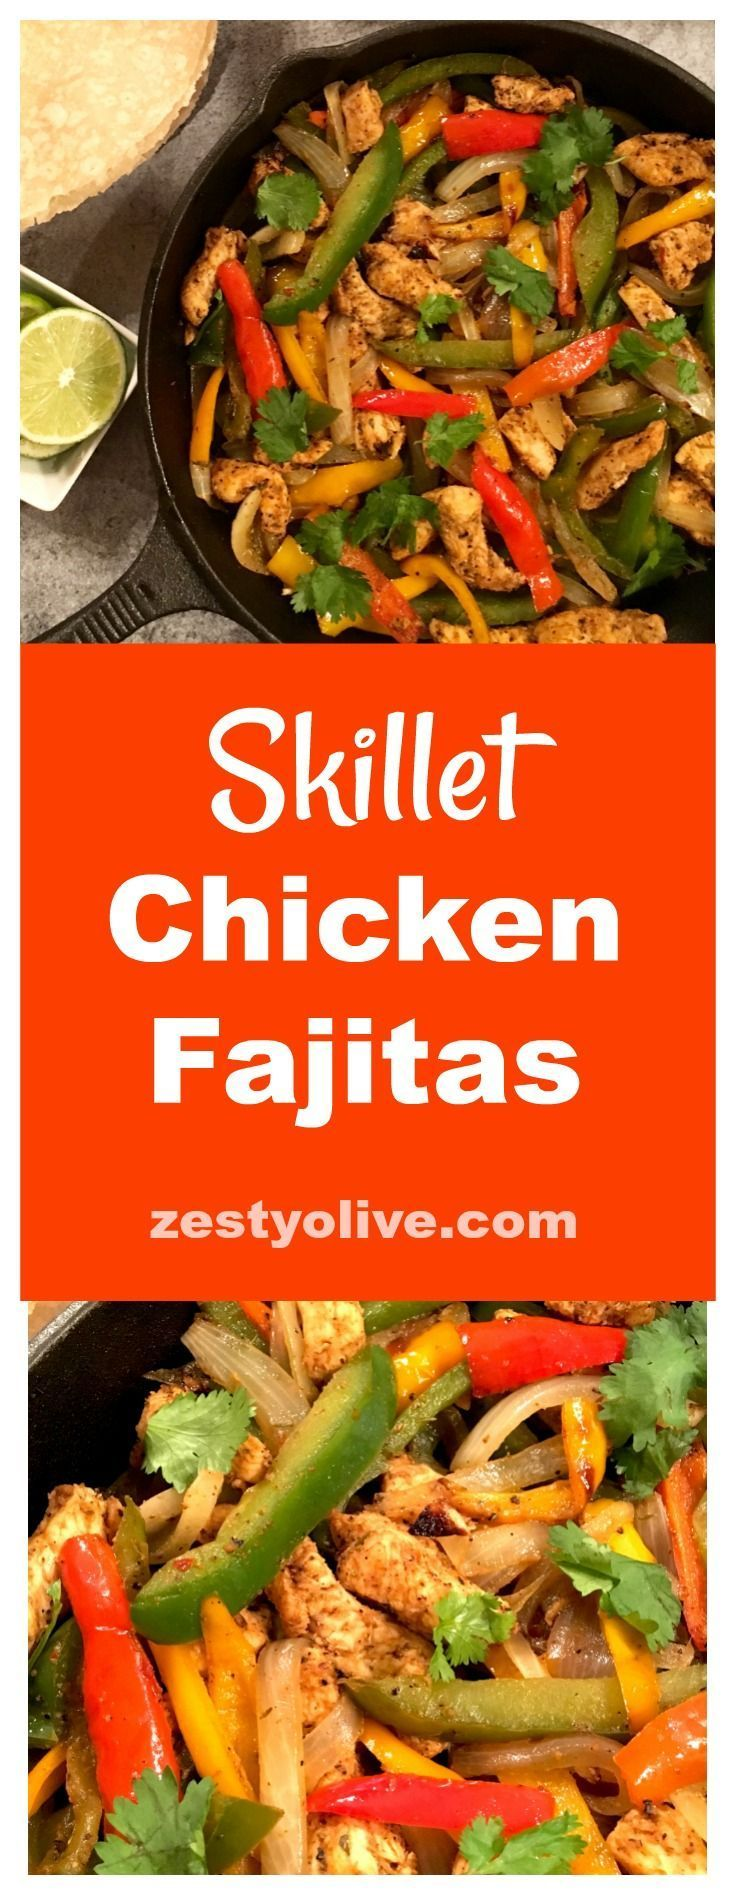 Here's my take on easy, zesty, skillet chicken fajitas, sizzled to perfection in a cast iron skillet. #fajitas #skilletrecipes #chicken #food #recipes #chickenfoodrecipes